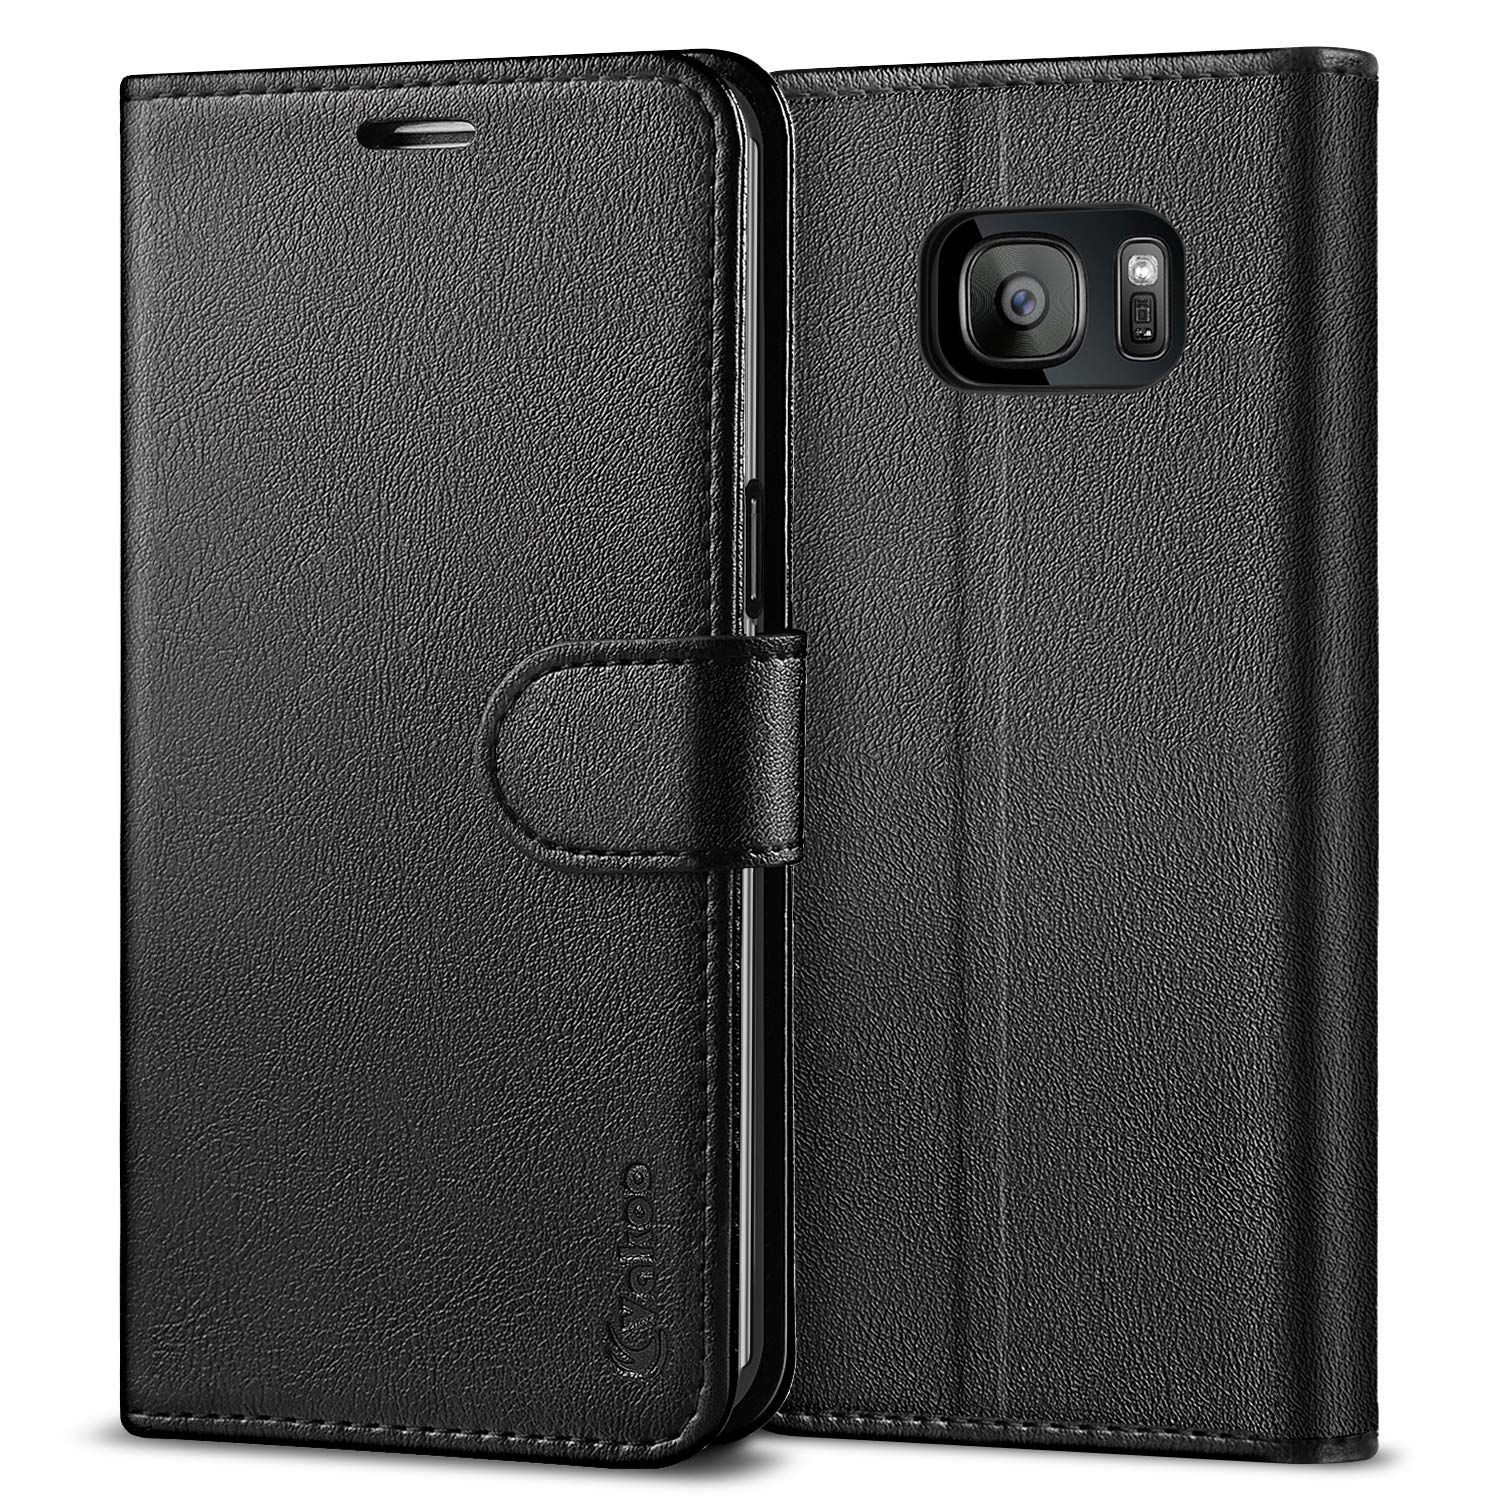 check out fc02a 765ad Vakoo Wallet Phone Case for Samsung Galaxy S7 Edge, Premium Flip Case and  PU Leather Cover for Samsung Galaxy S7 Edge (5.5